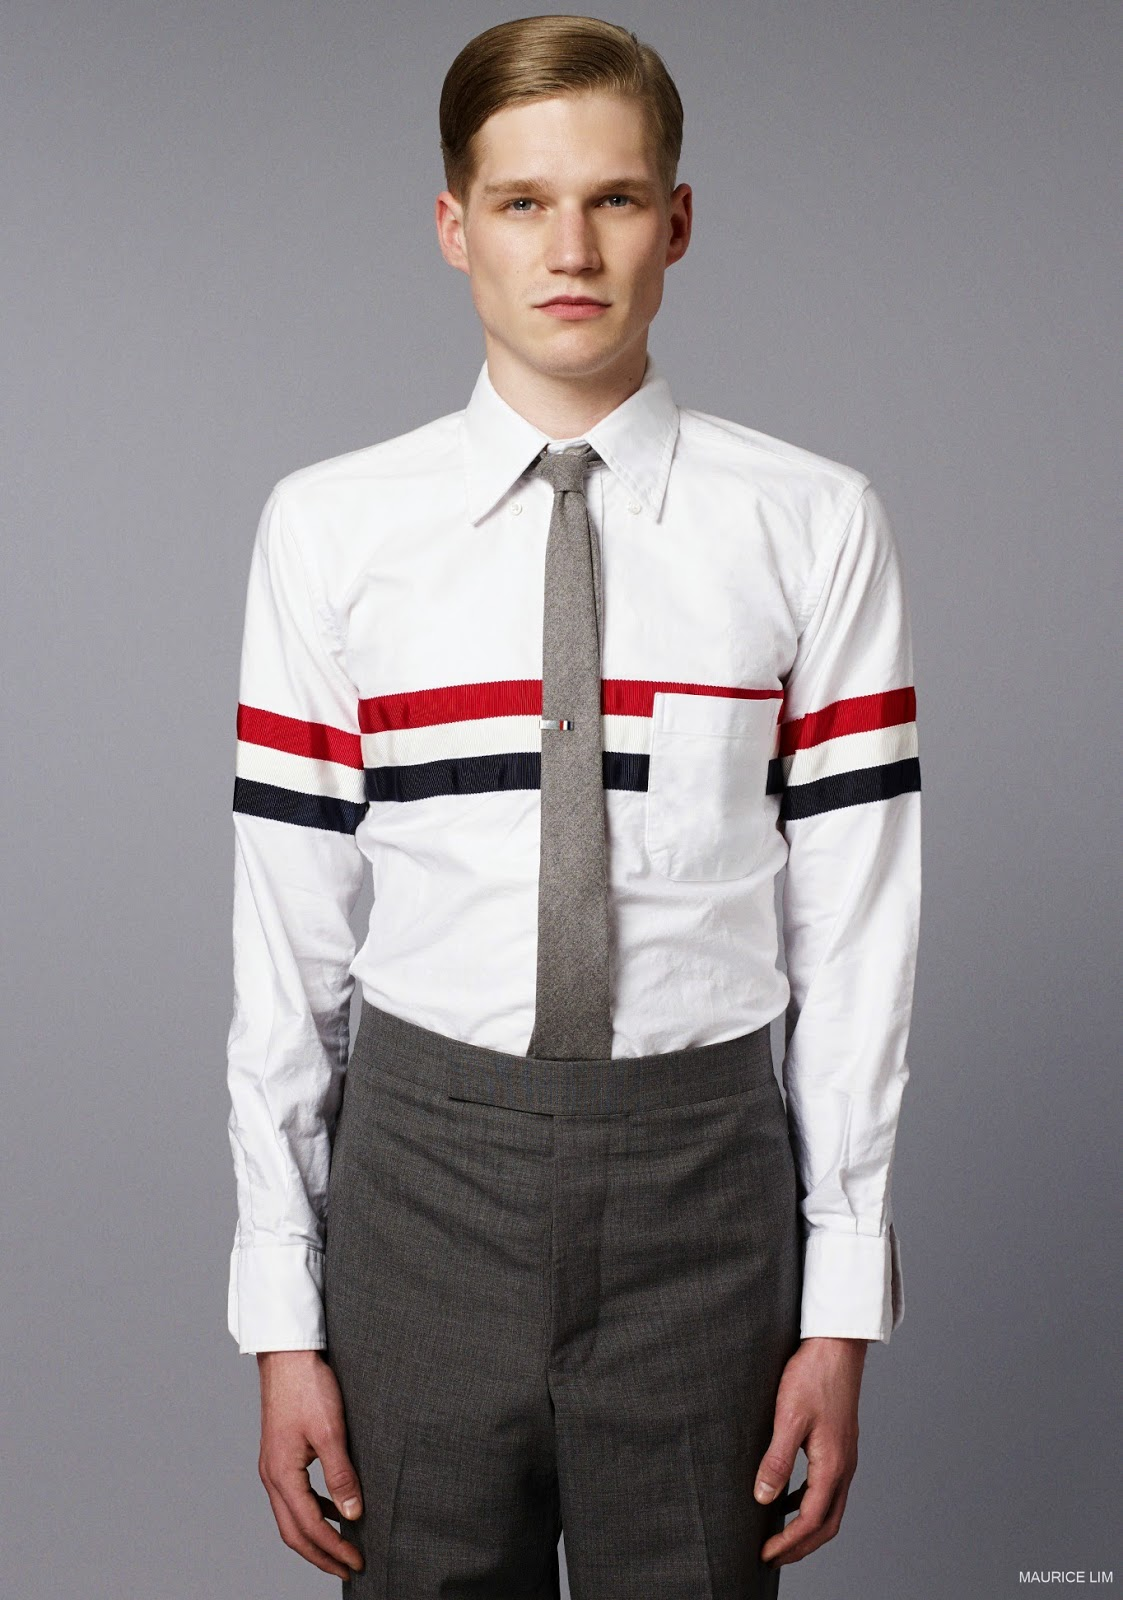 b92e2fac176 Thom Browne Fall Winter 2014 Lookbook – Second Kulture